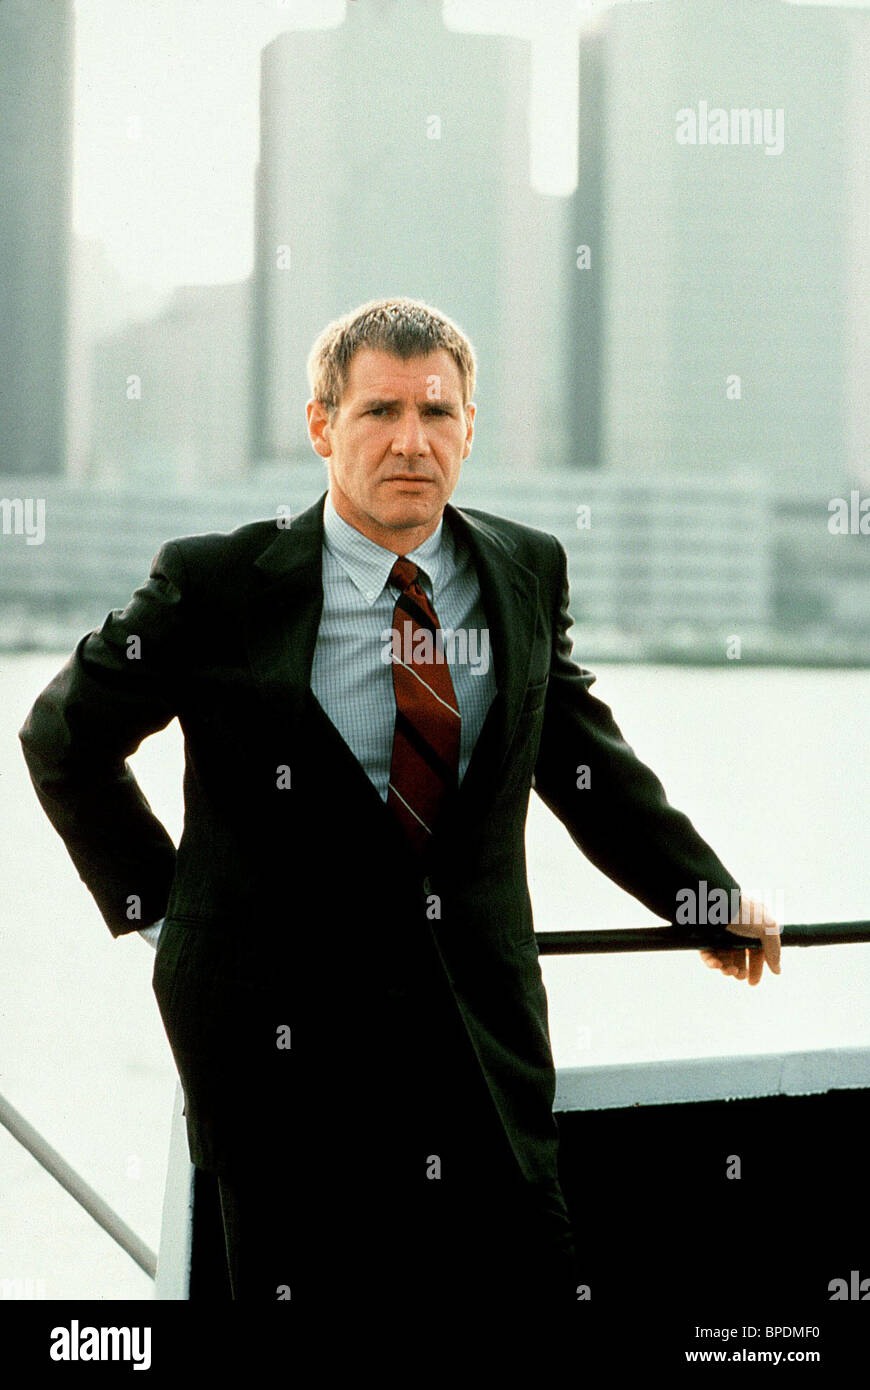 Awesome HARRISON FORD PRESUMED INNOCENT (1990)